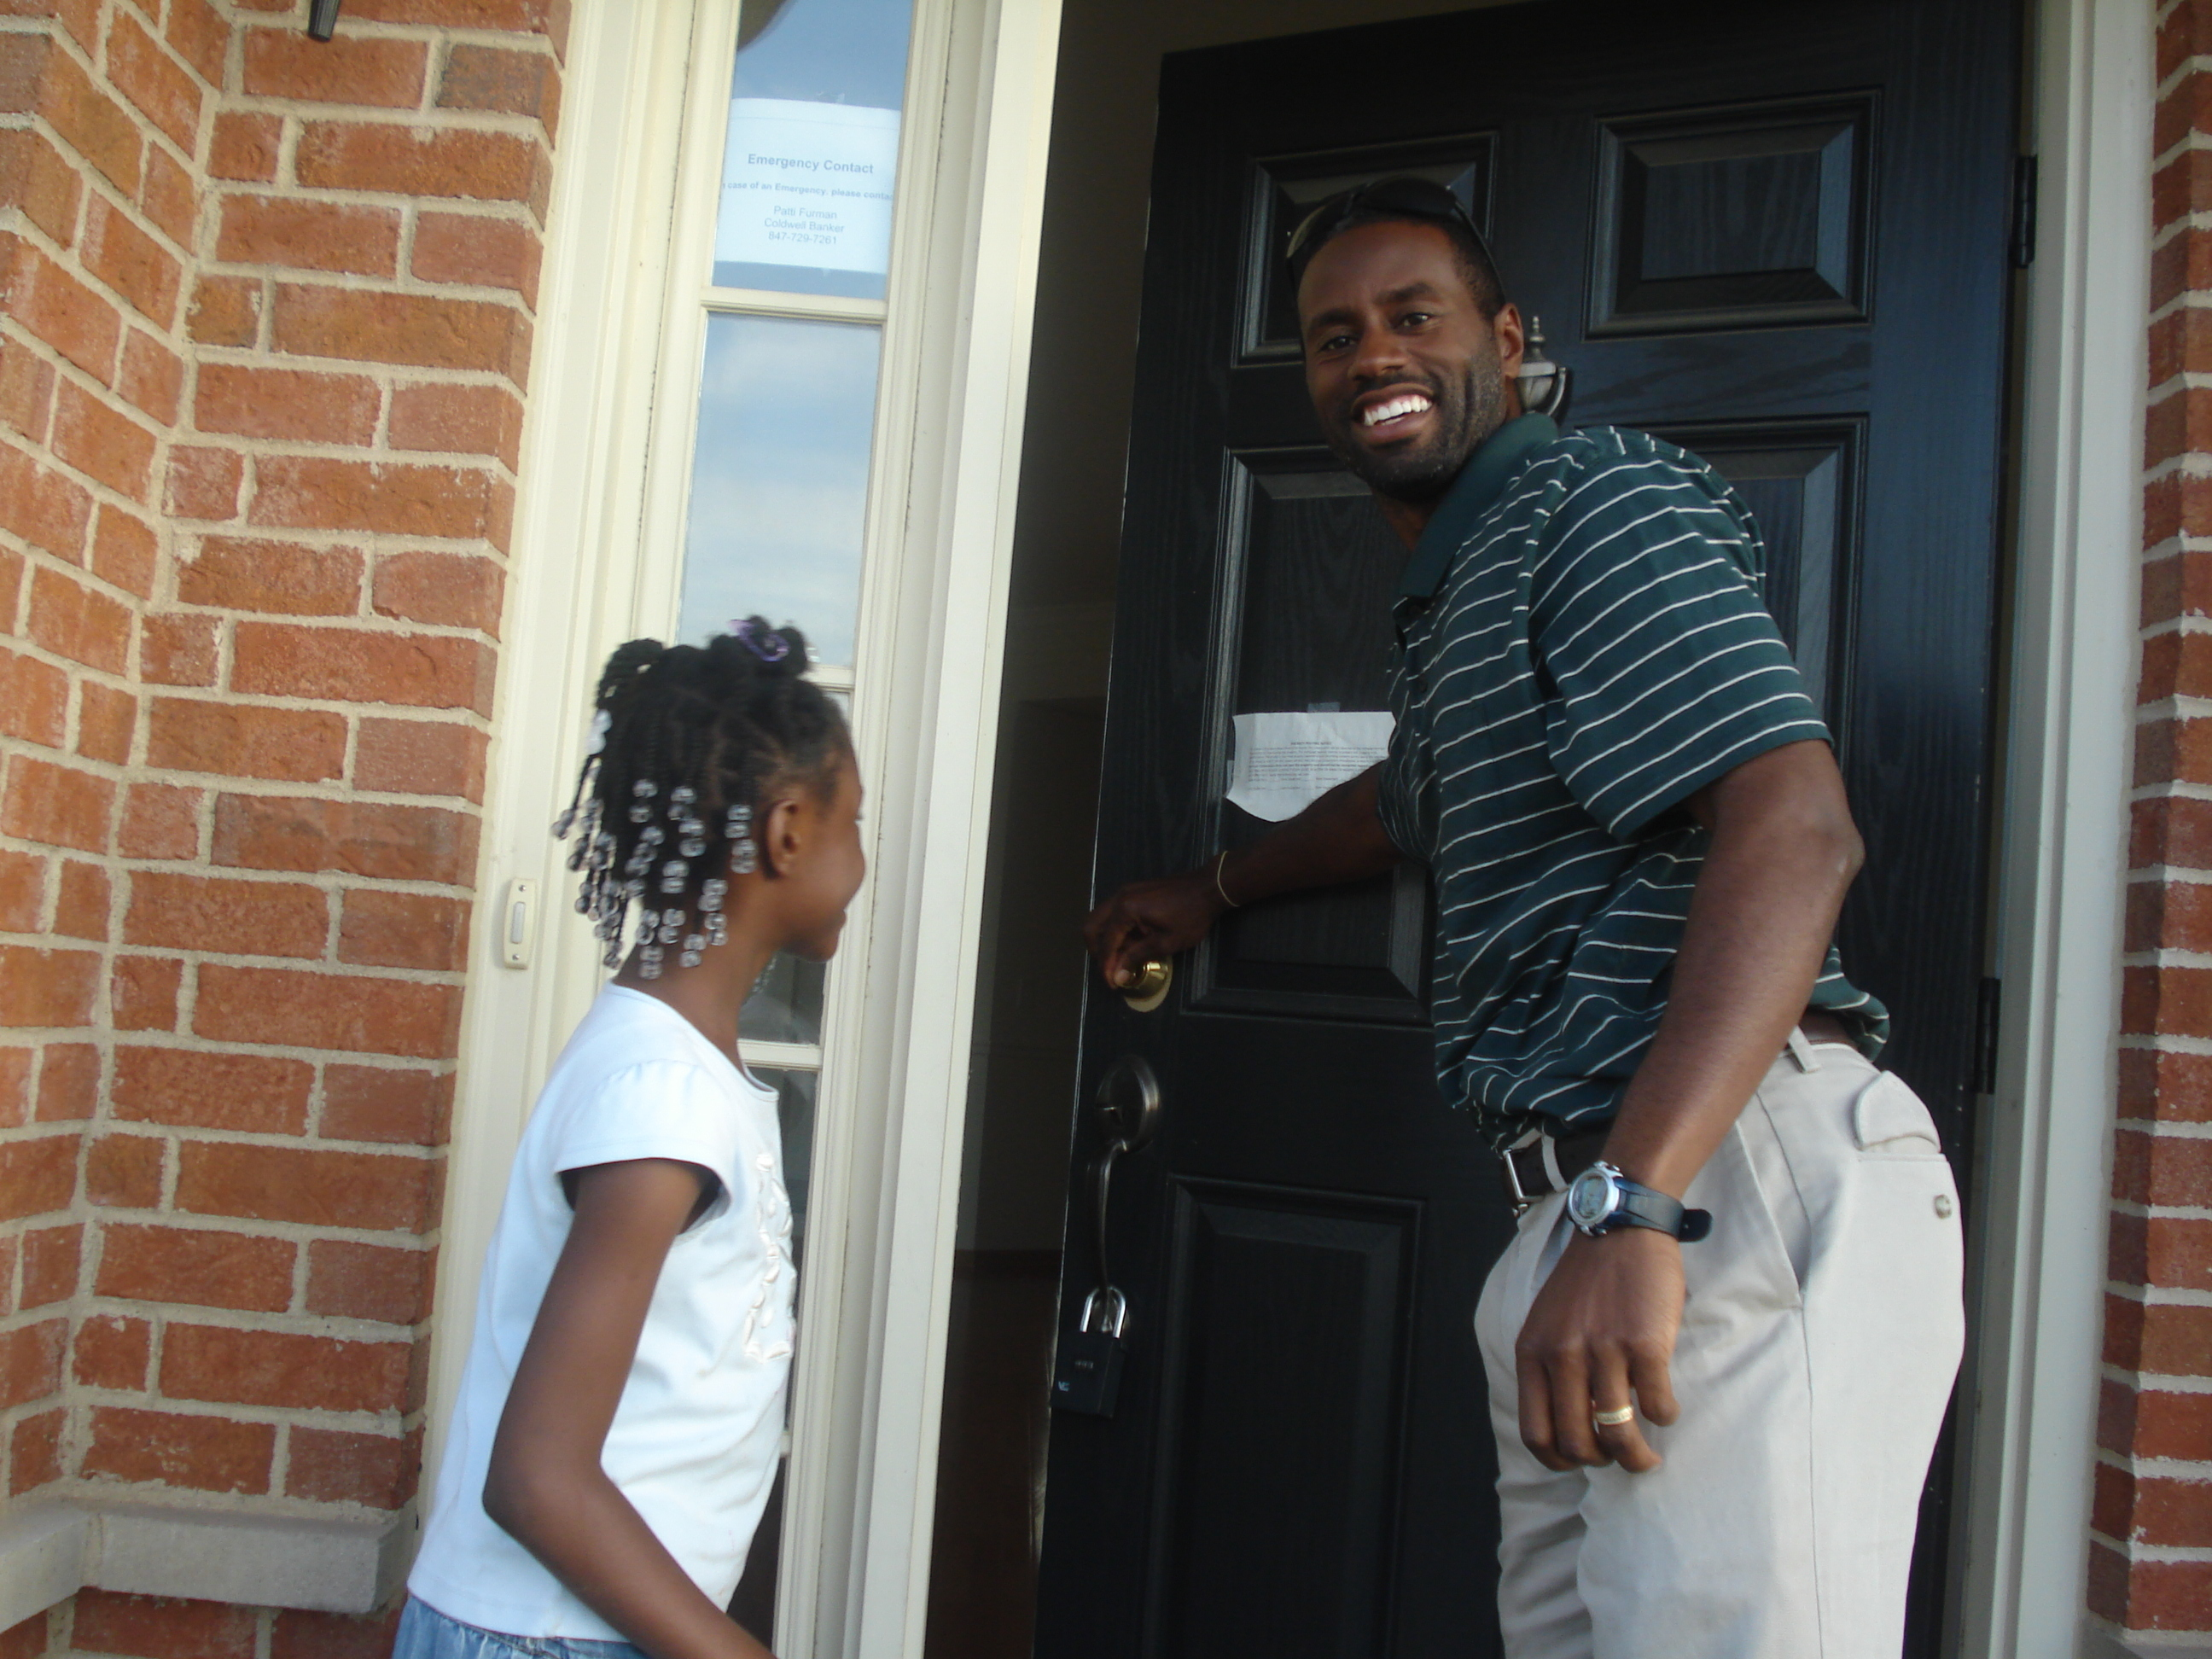 Tyrone opening the door of his new home as Naomi looks on with much joy and excitement!